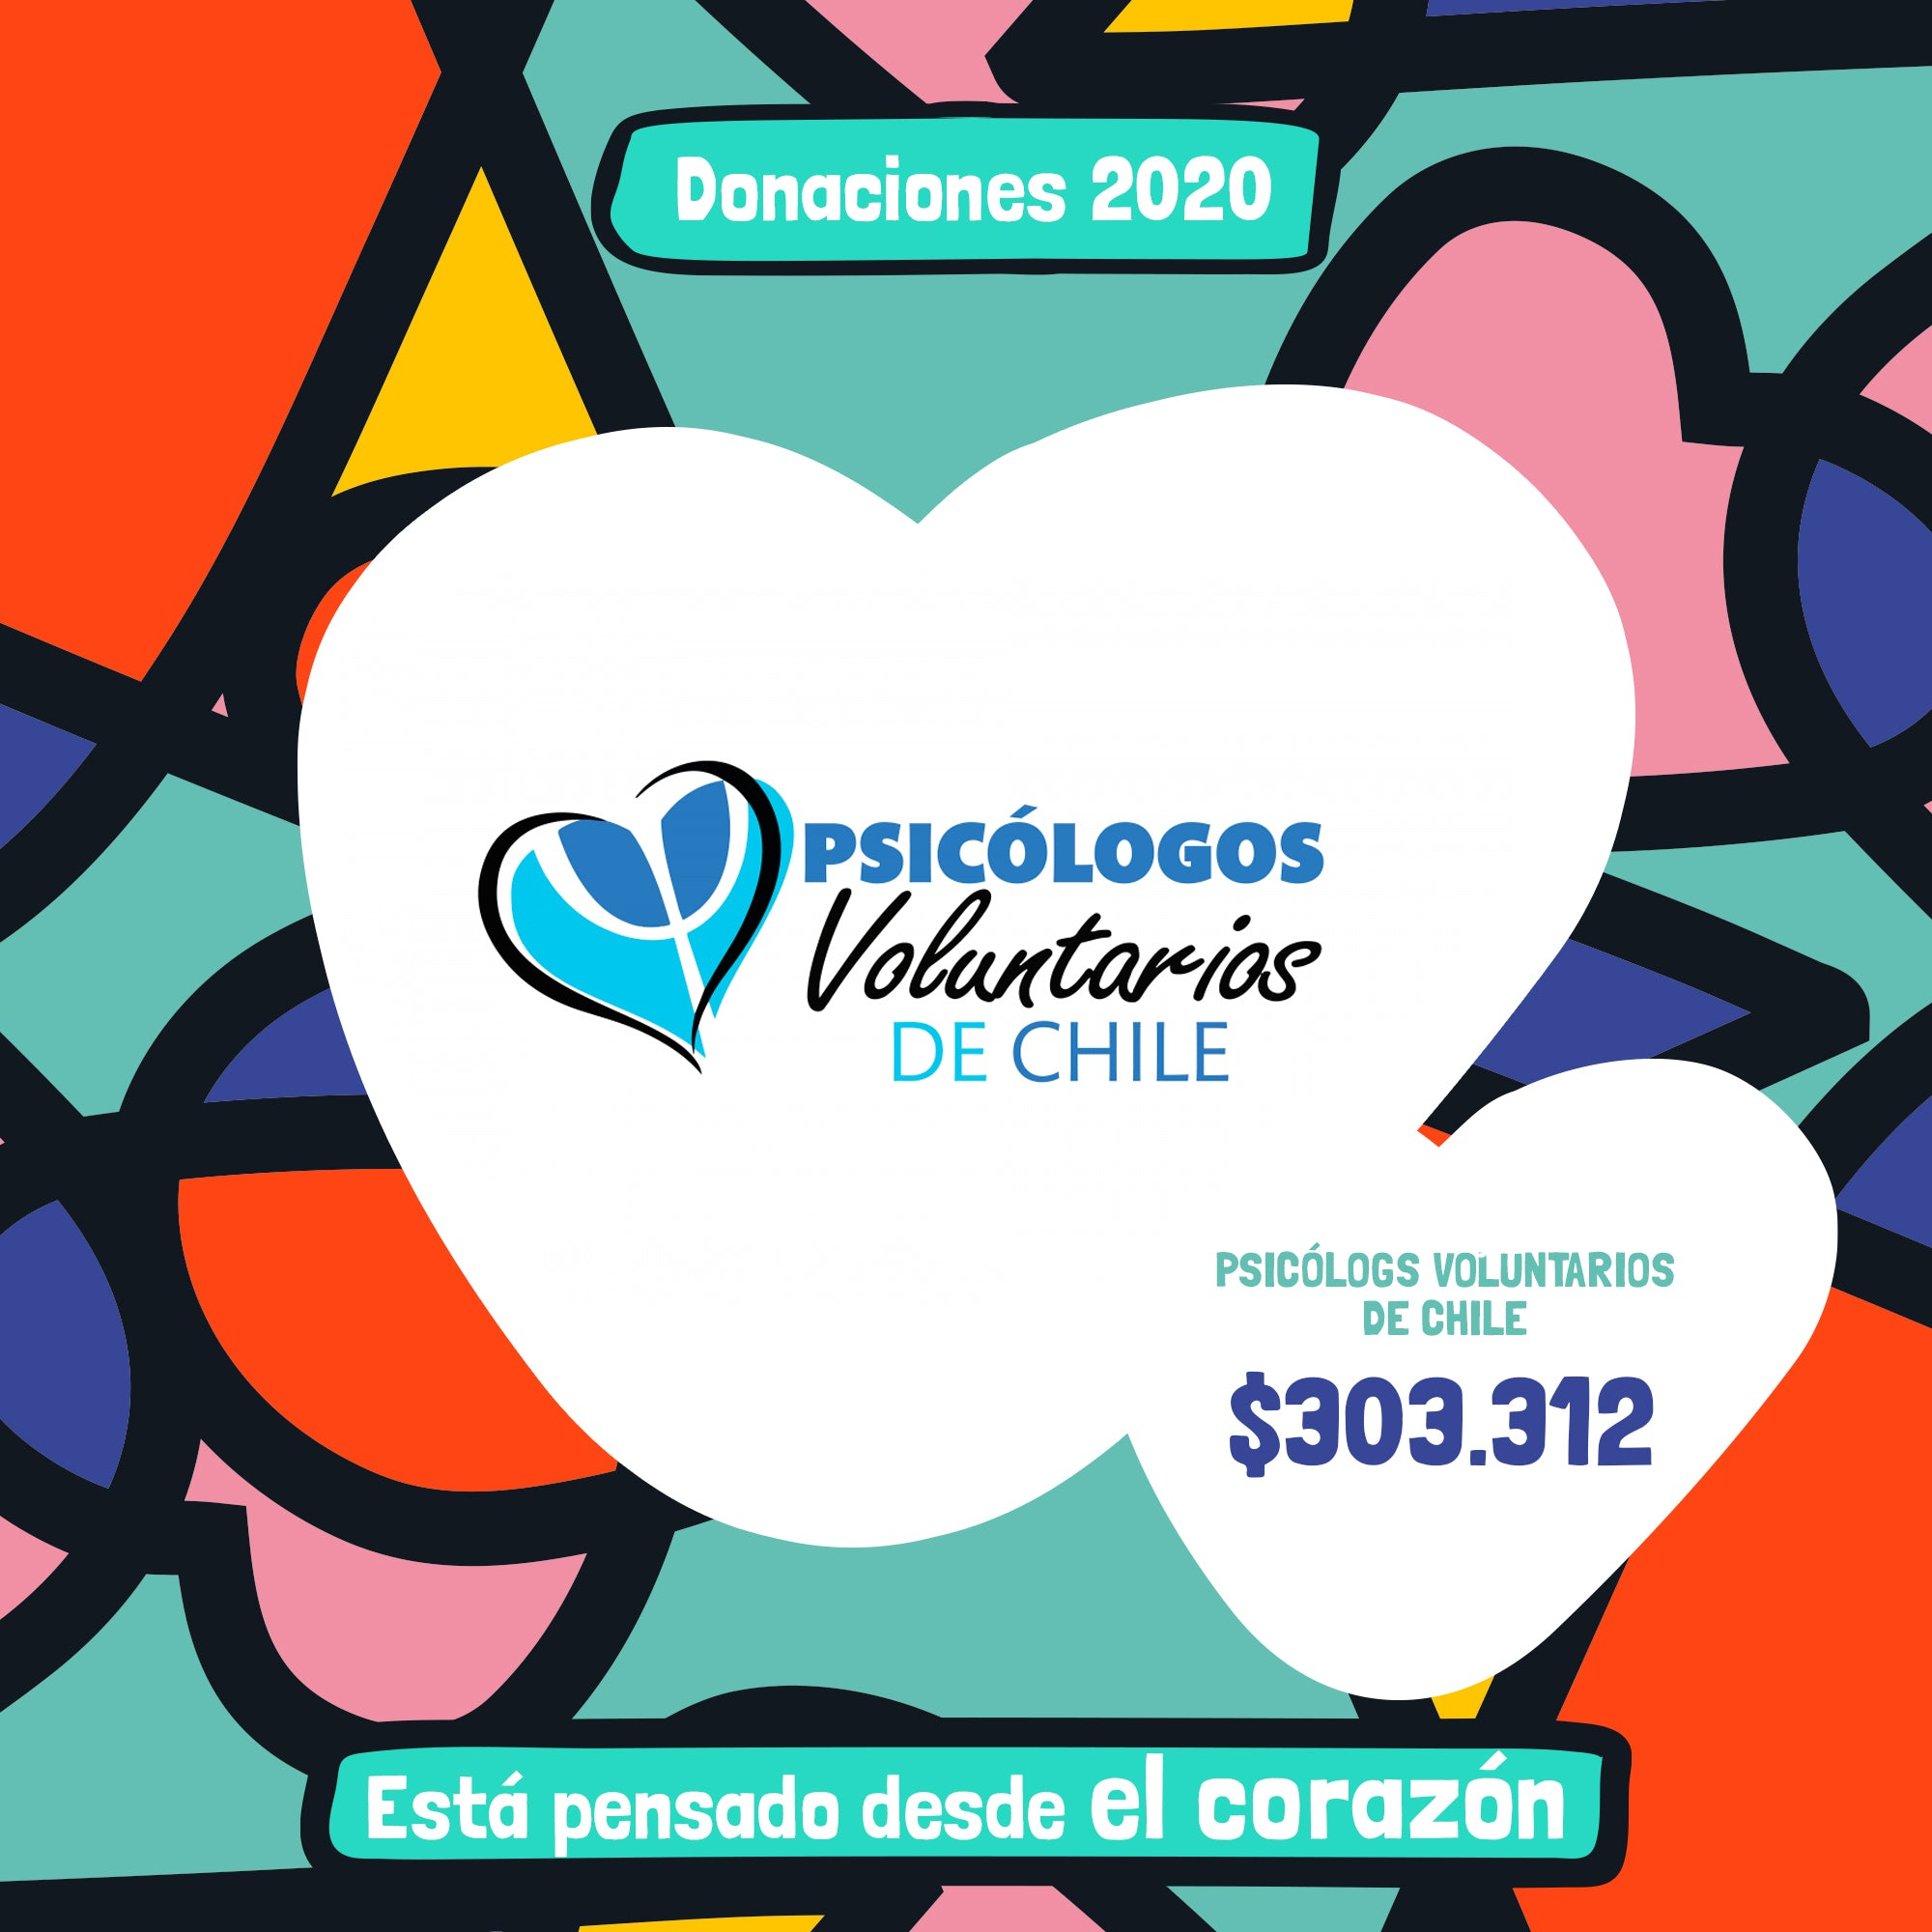 PSICÓLOGOS VOLUNTARIOS